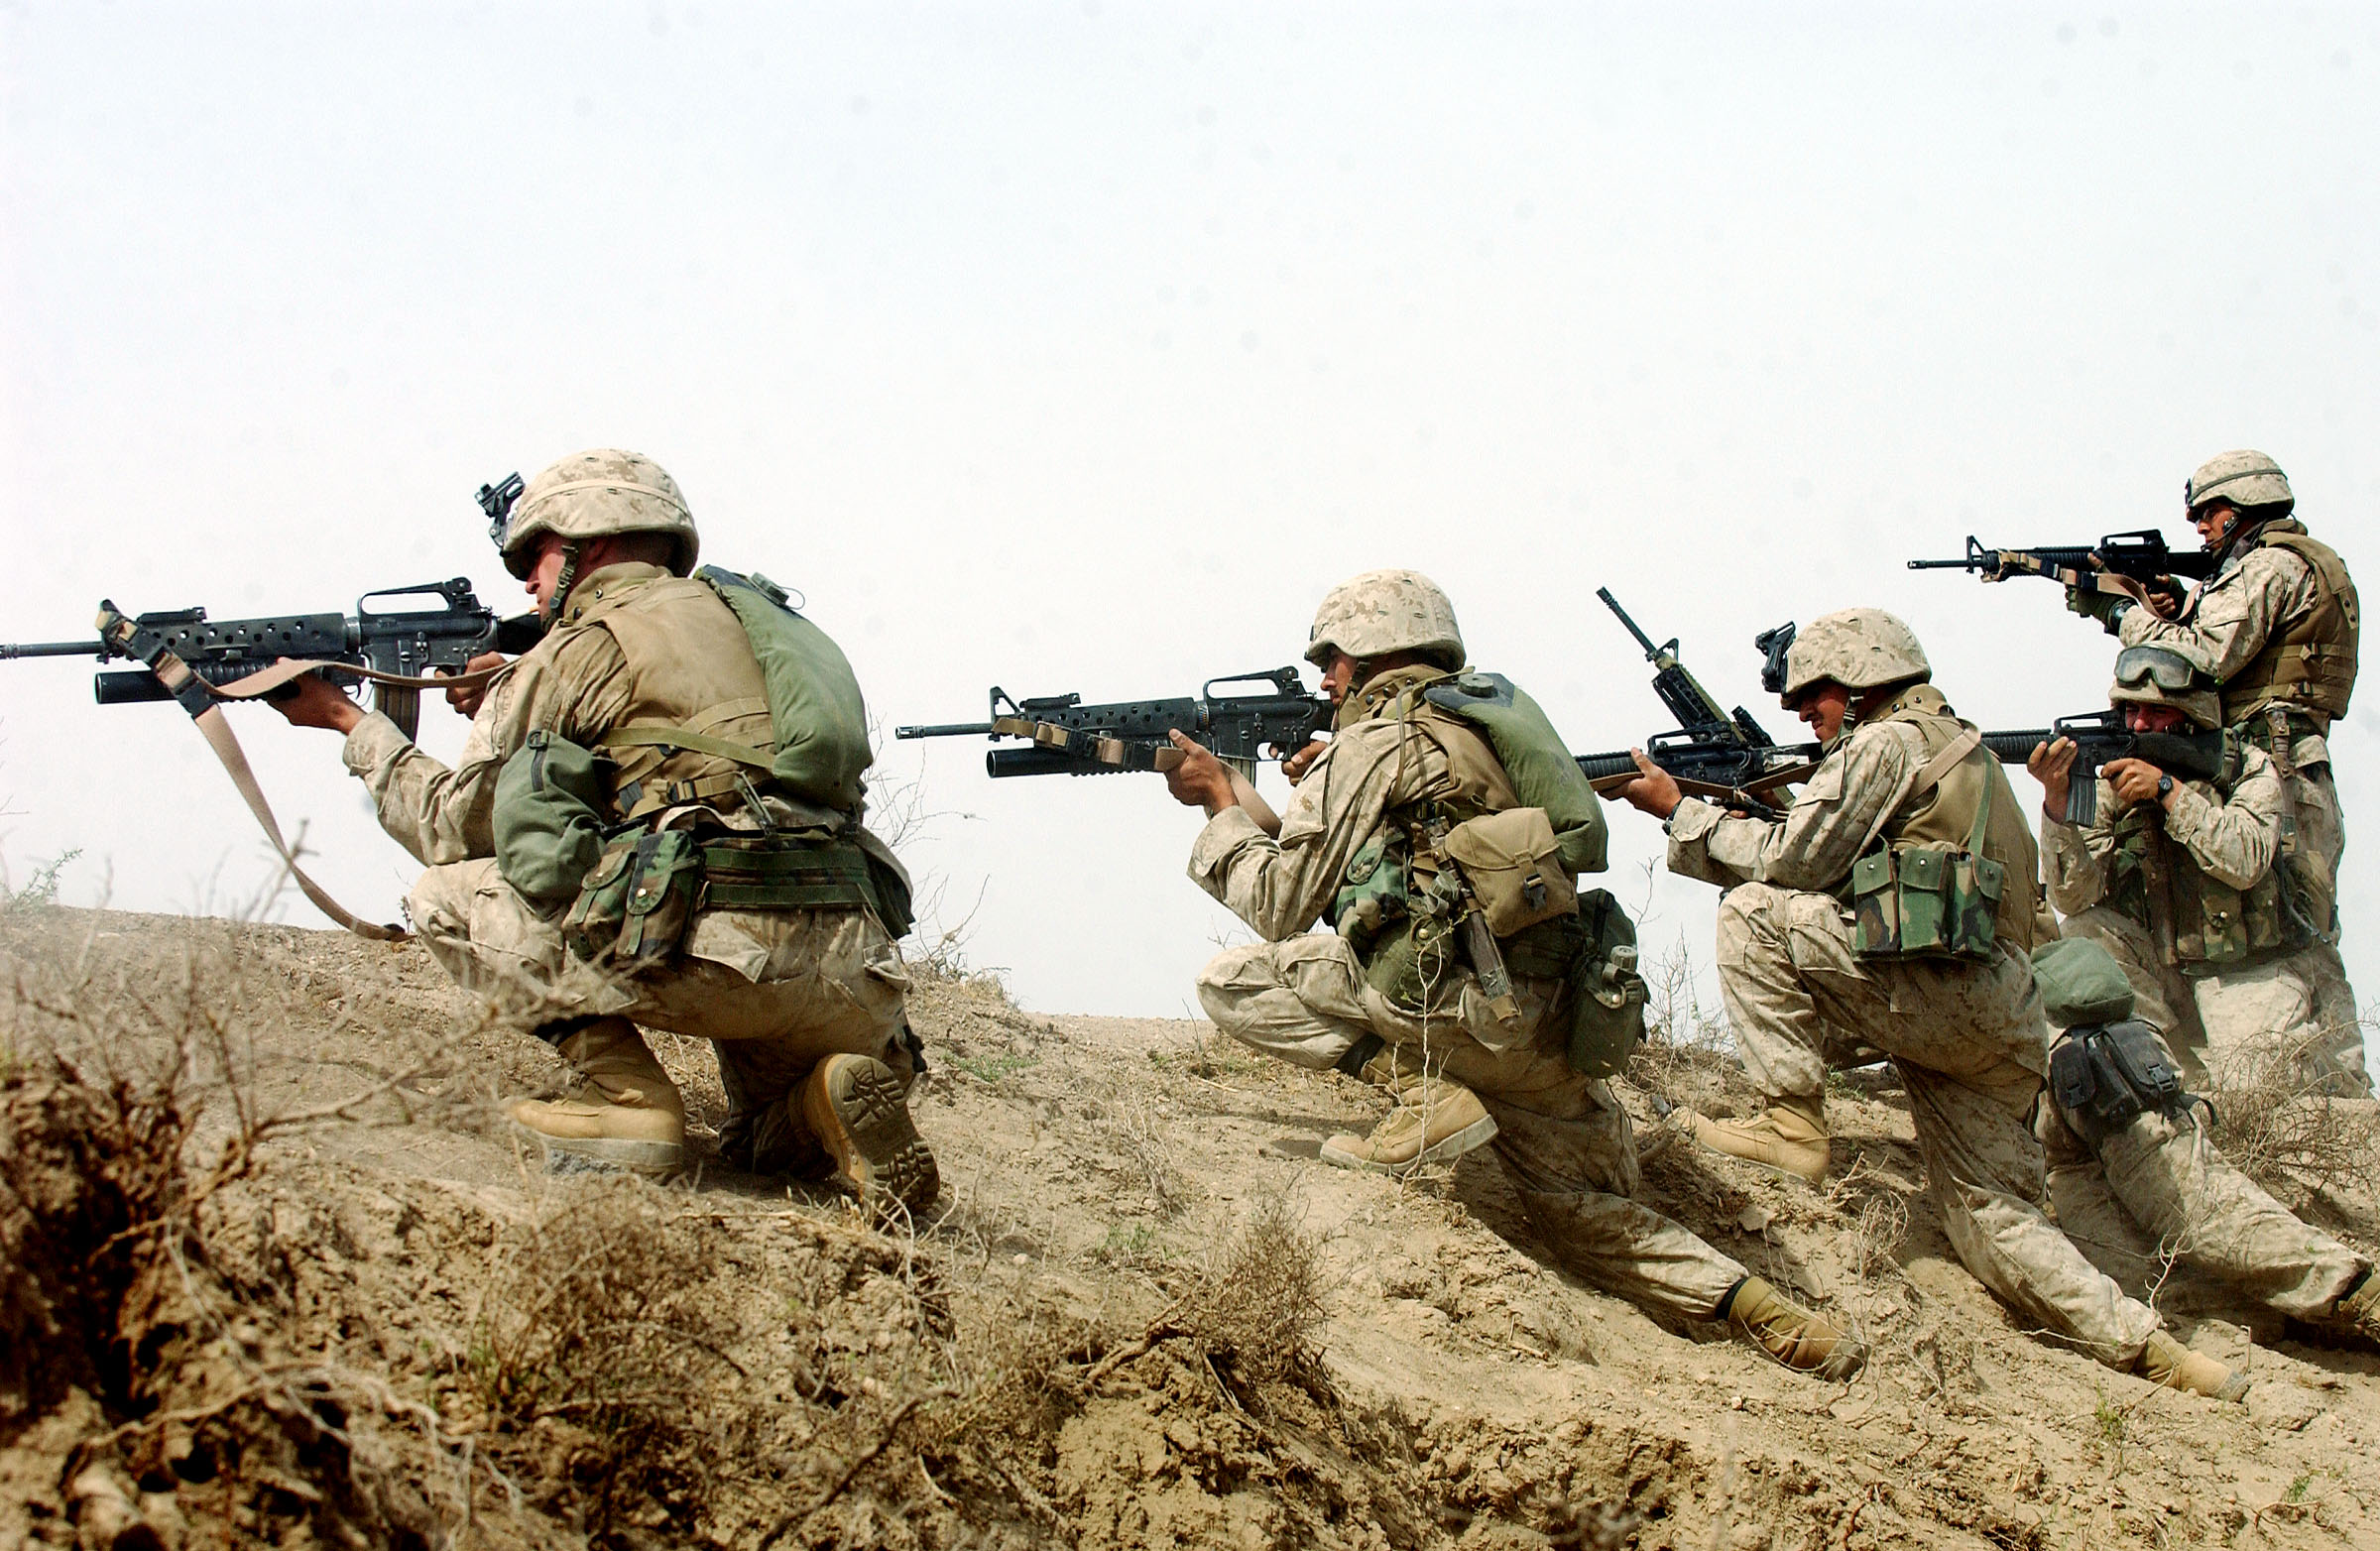 U.S. marines fire on a group of insurgents shortly after they launched a rocket propelled grenade at their 7-ton truck while on a 'movement-to-contact mission in order to flush out insurgents operating in the Fallujah area  south of Fallujah on Thursday, April 15, 2004 in Iraq.  The marines are part of the 3rd Battalion, 4th marine regiment, which saw heavy combat at the beginning of the war last year, and is now back in Iraq embroiled in intense fighting with the resistance.  Today, the men of the 3rd Battalion were ambushed half a dozen times while they patrolled the palm groves and wheat fields around fallujah, and the marines killed at least 10 insurgents, and suffered only minor injuries.